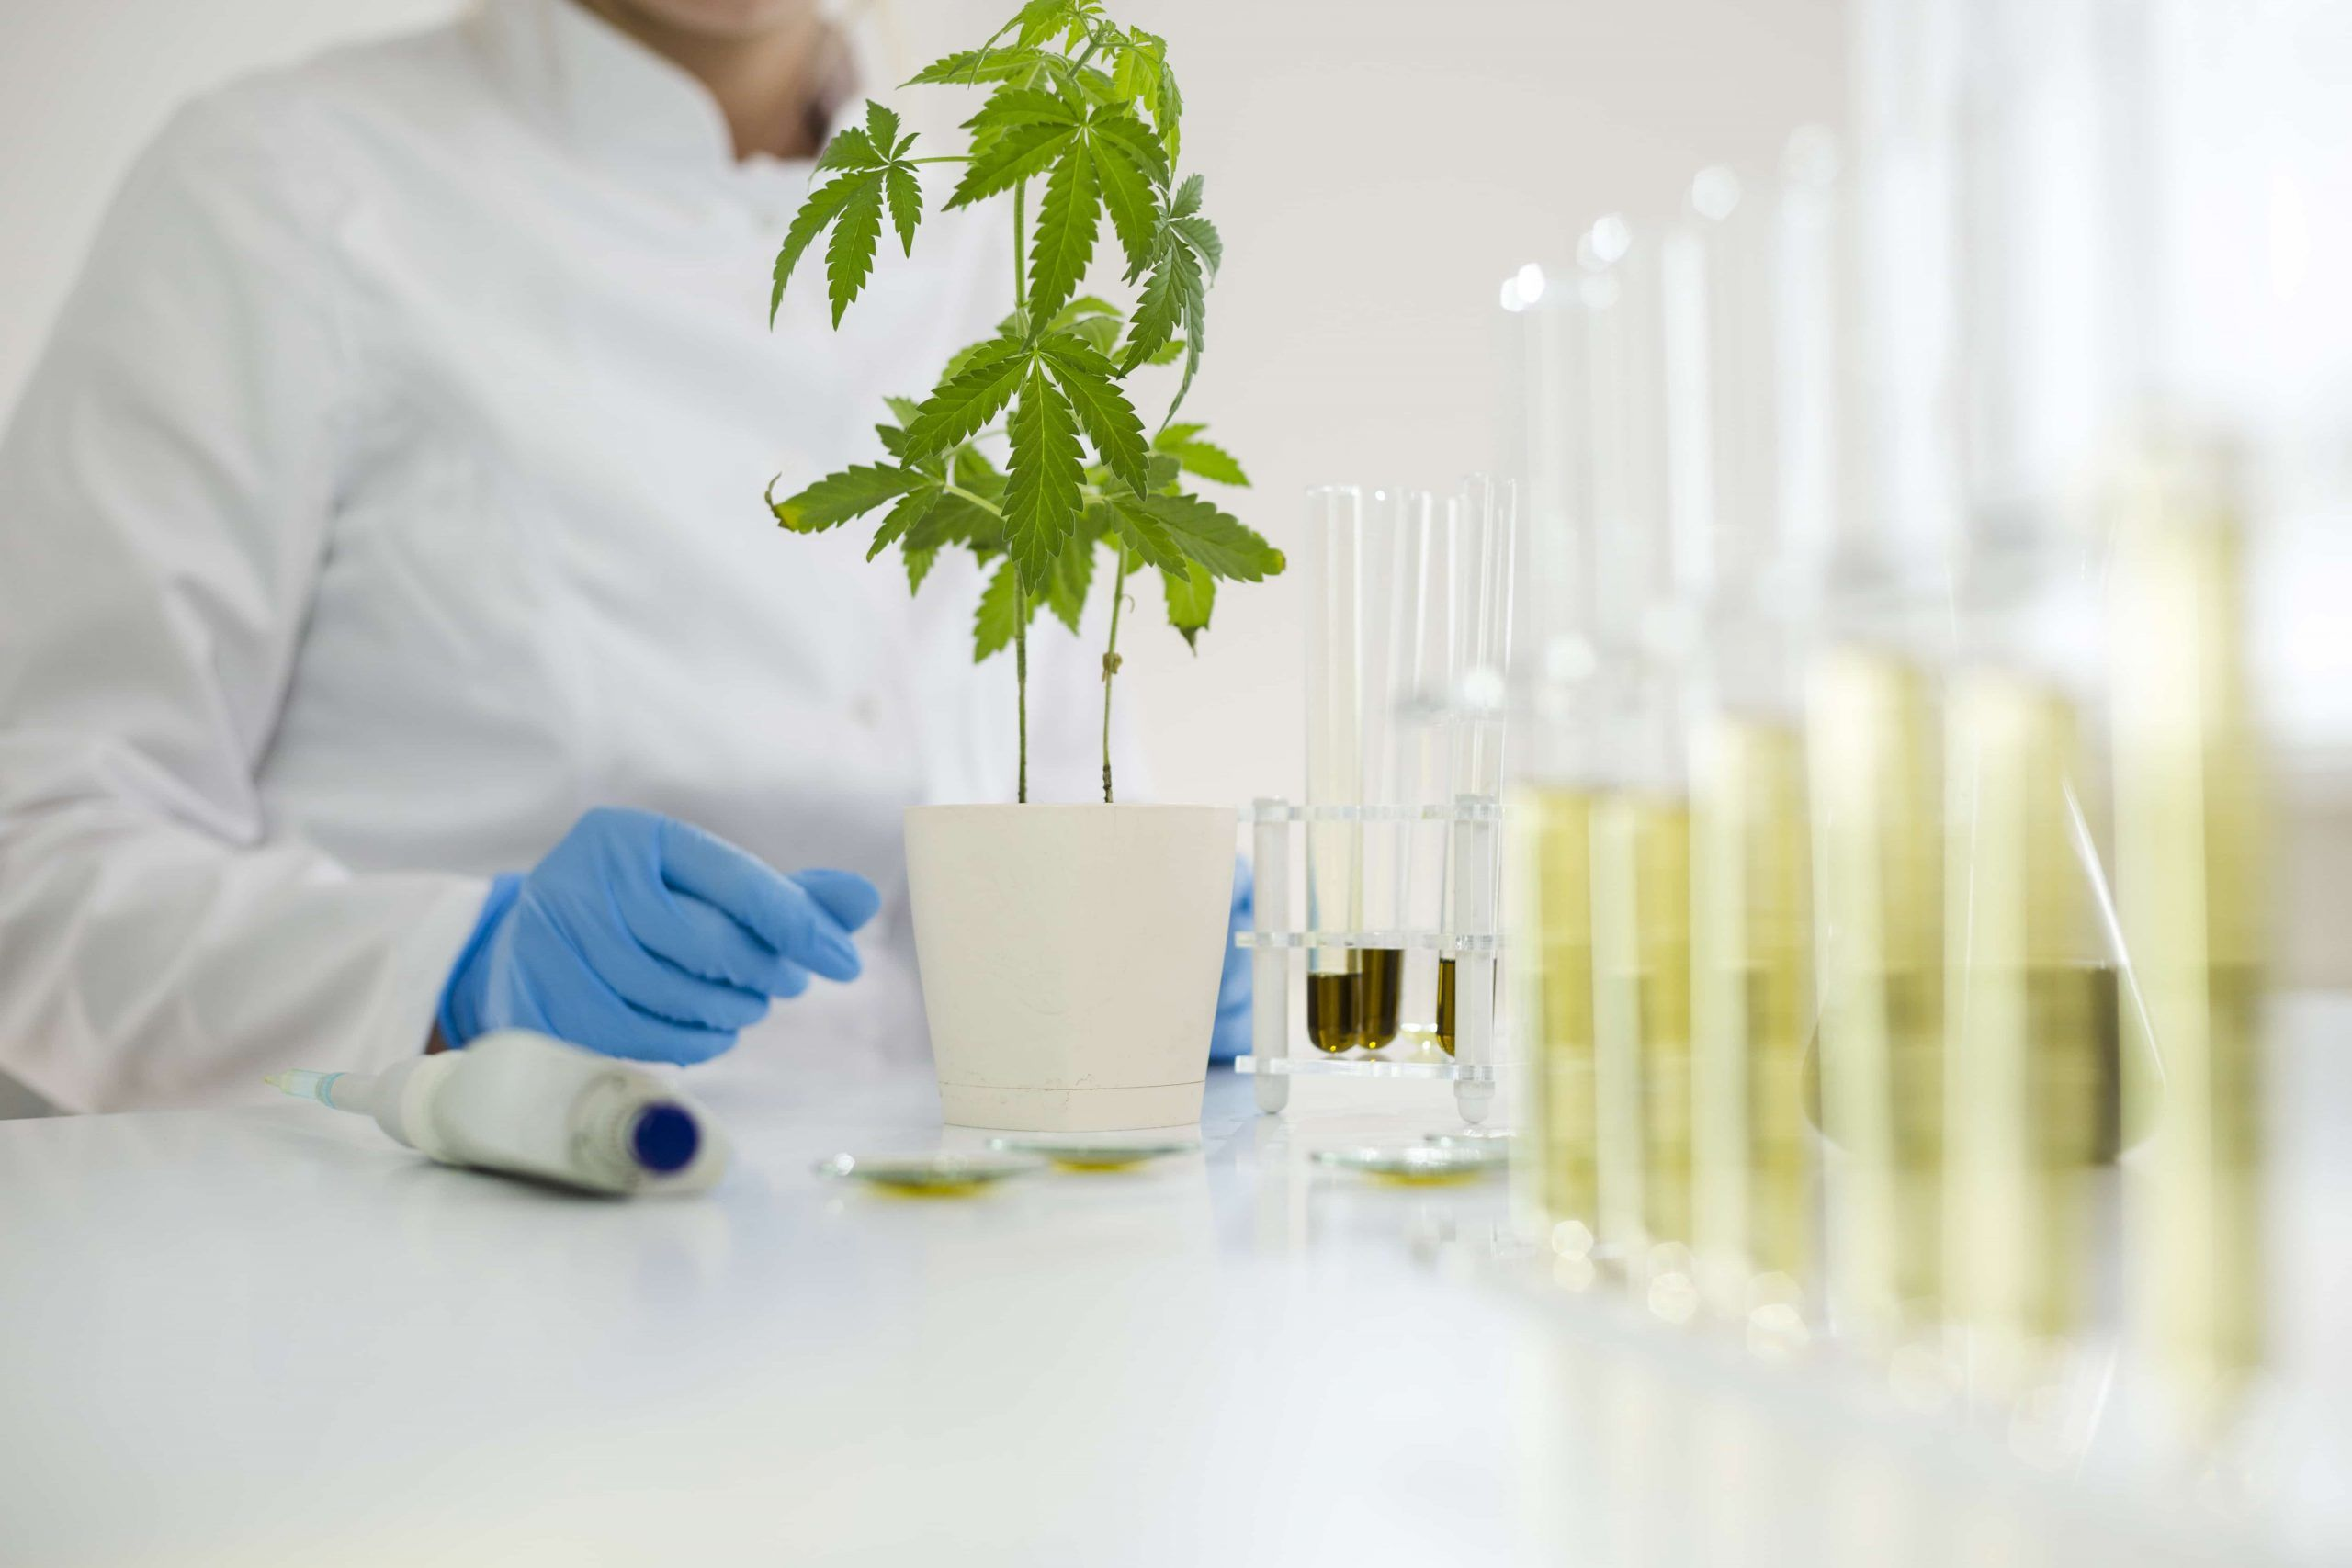 scientist looking at young hemp plant and test tubes